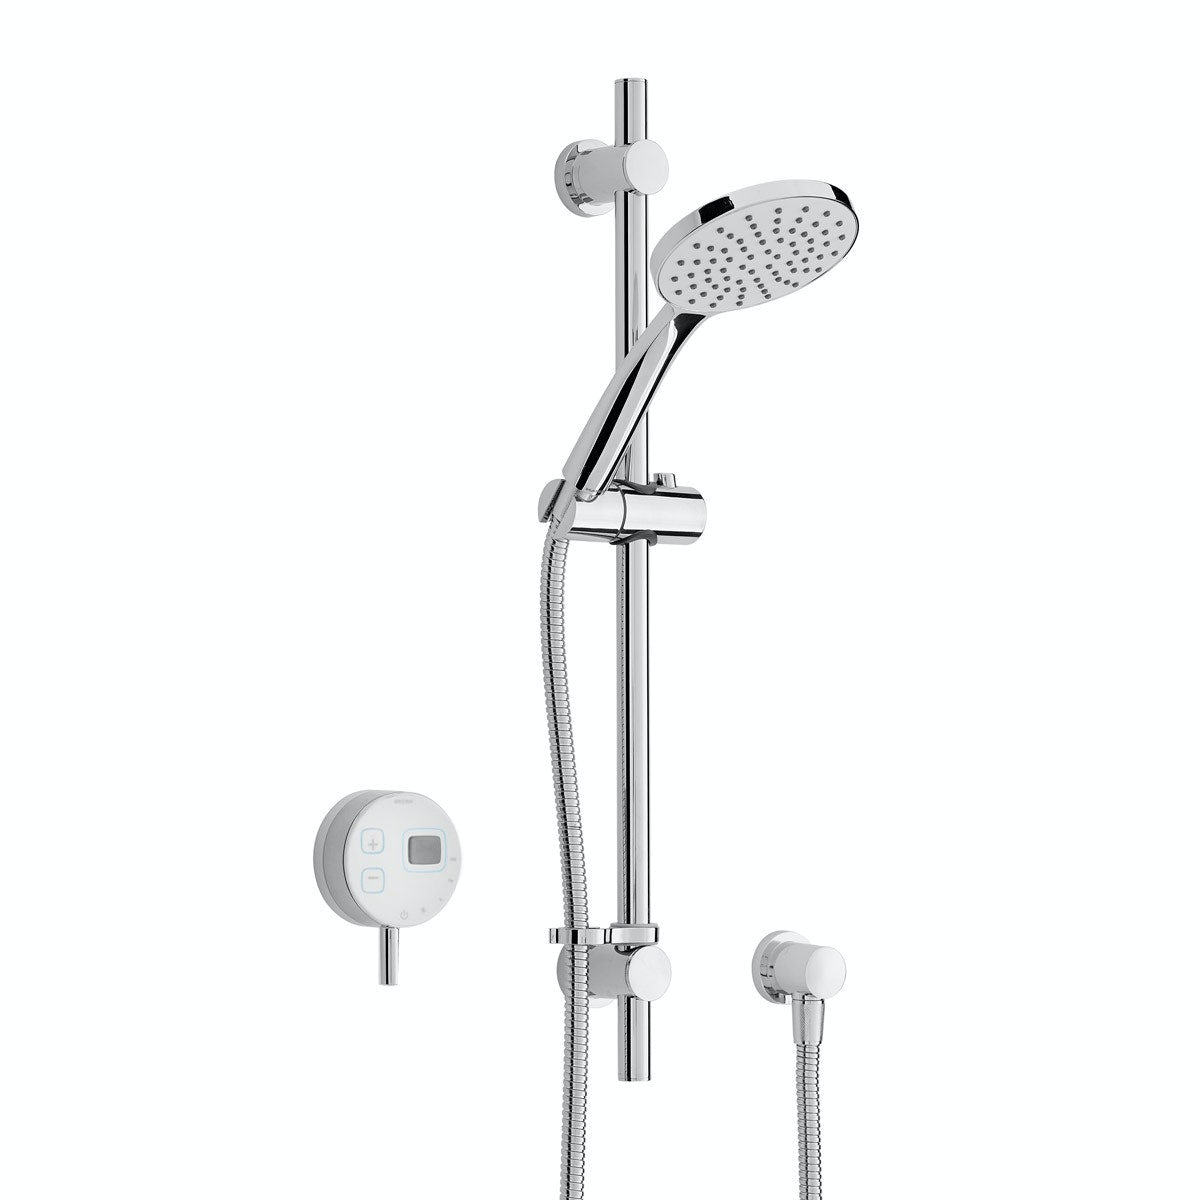 Bristan Artisan Evo digital shower with slider rail kit white